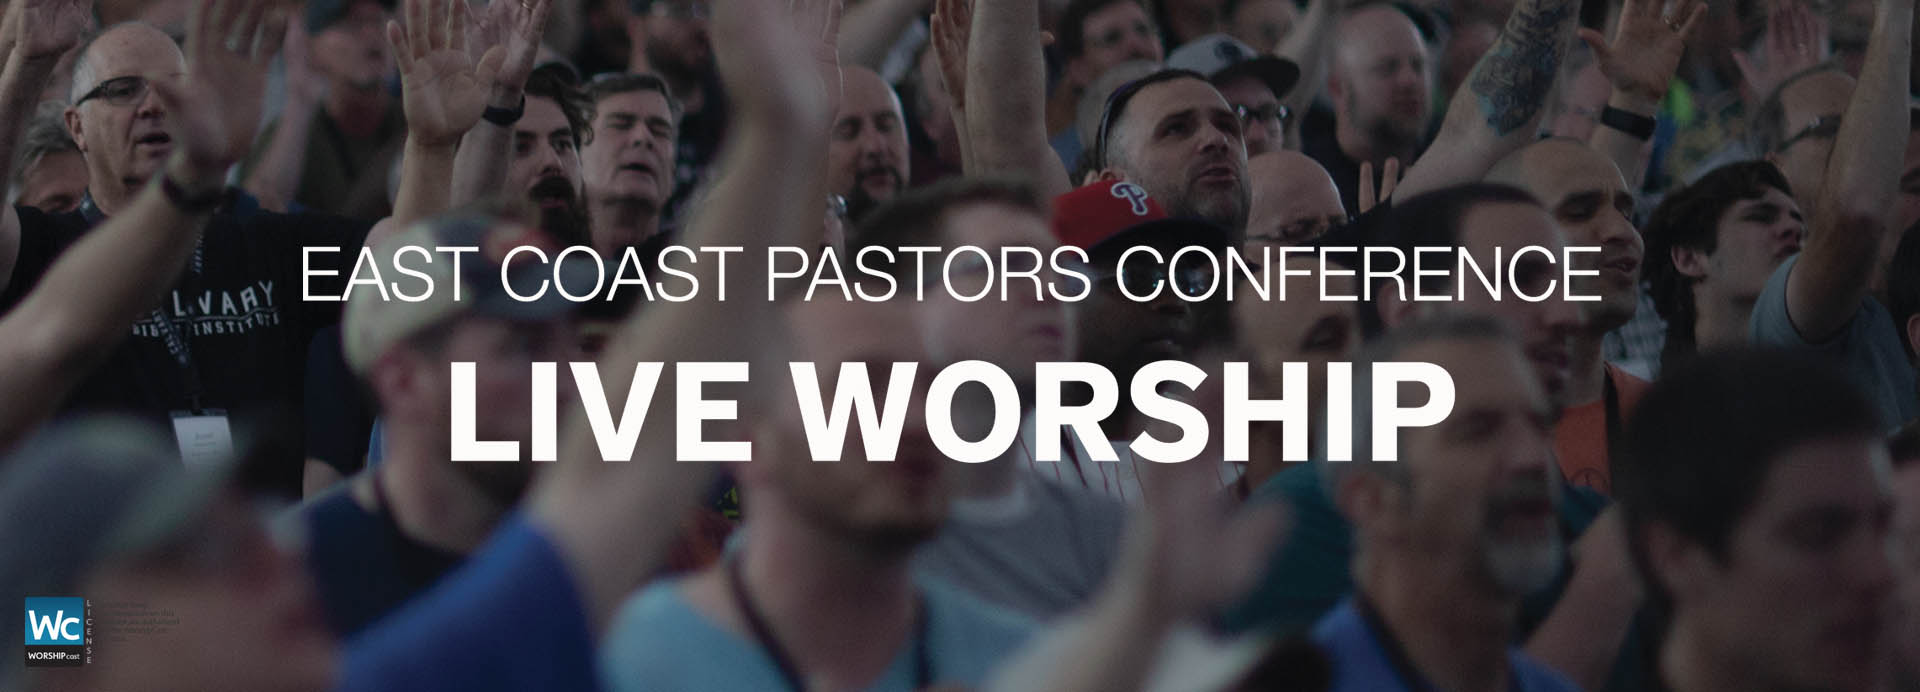 2019 East Coast Pastor's Conference Live Worship